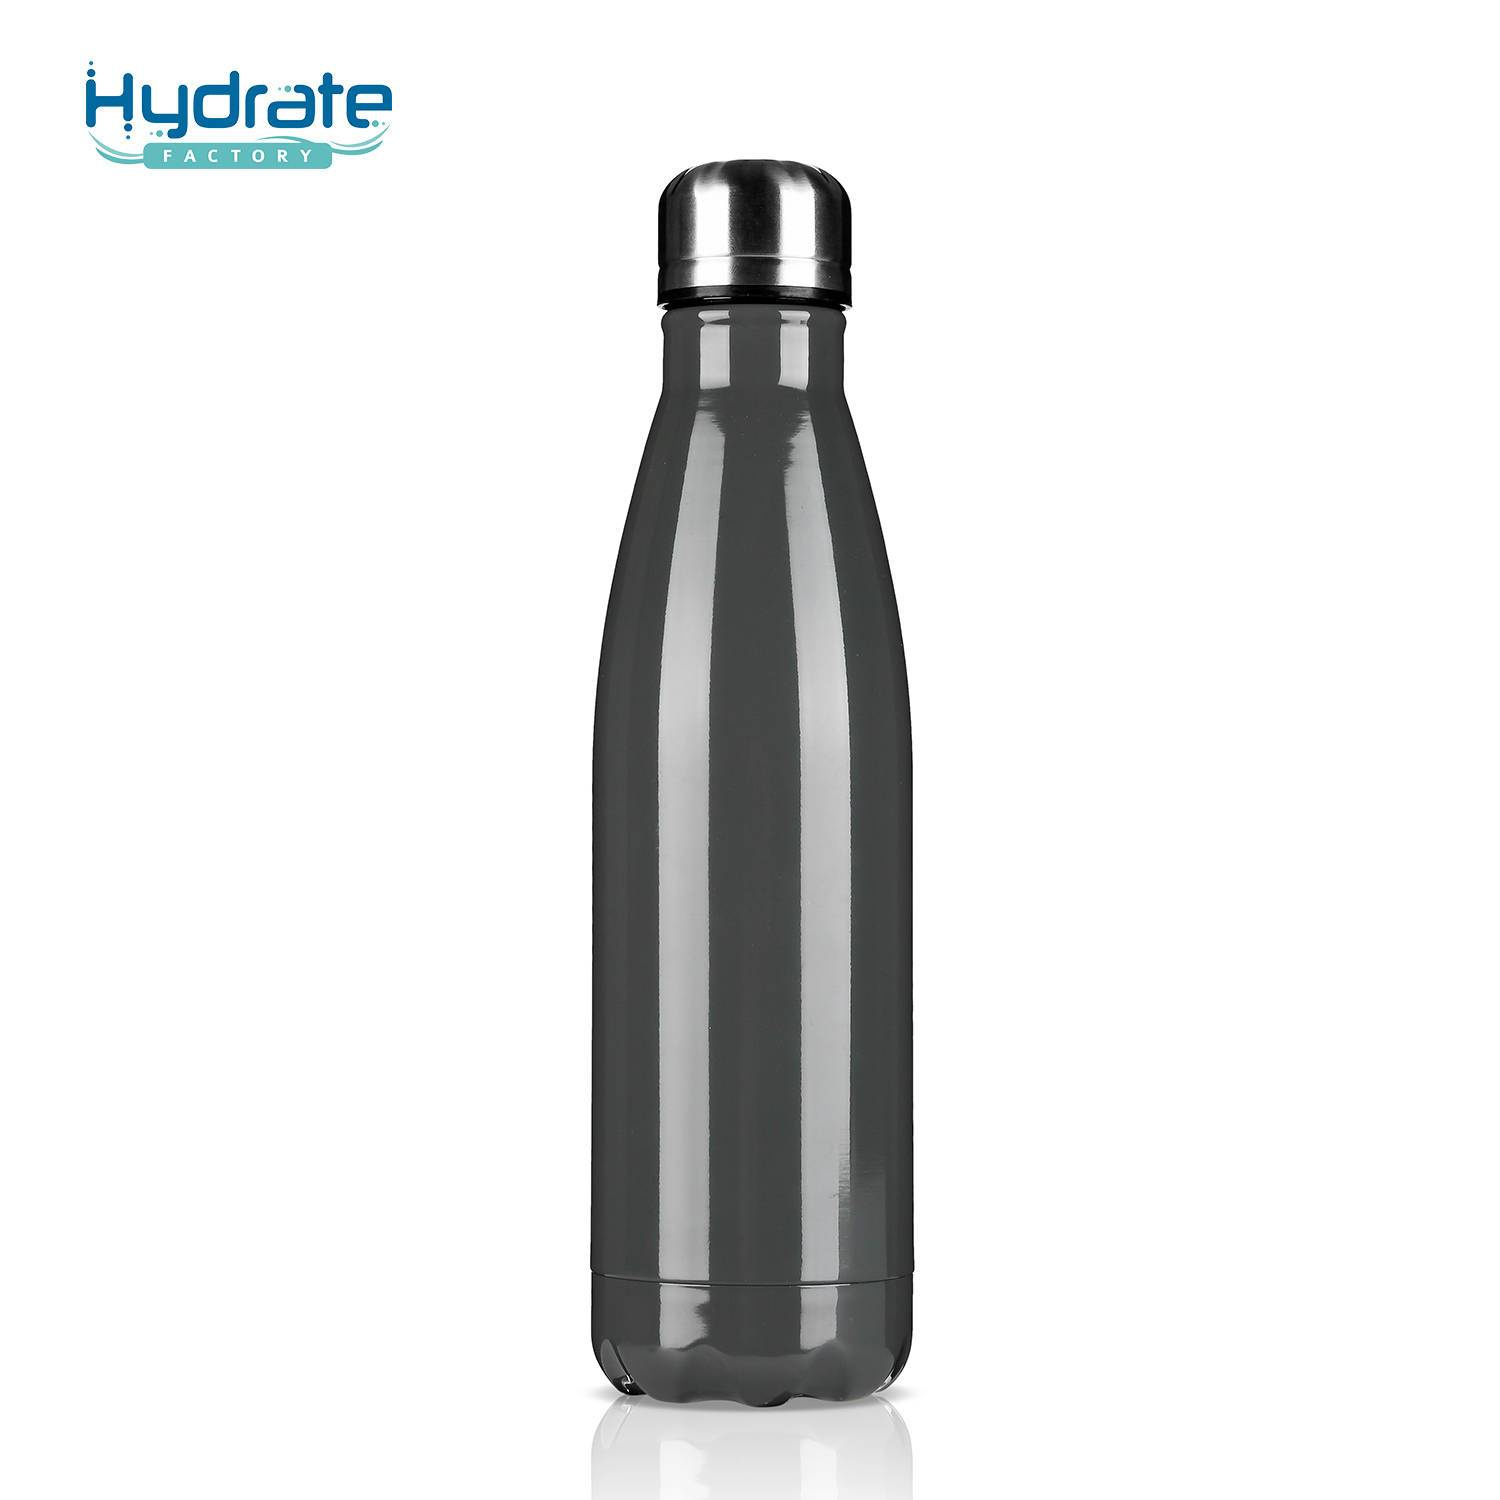 Vacuum Flask Hf Ck 25 Hydrate Factory